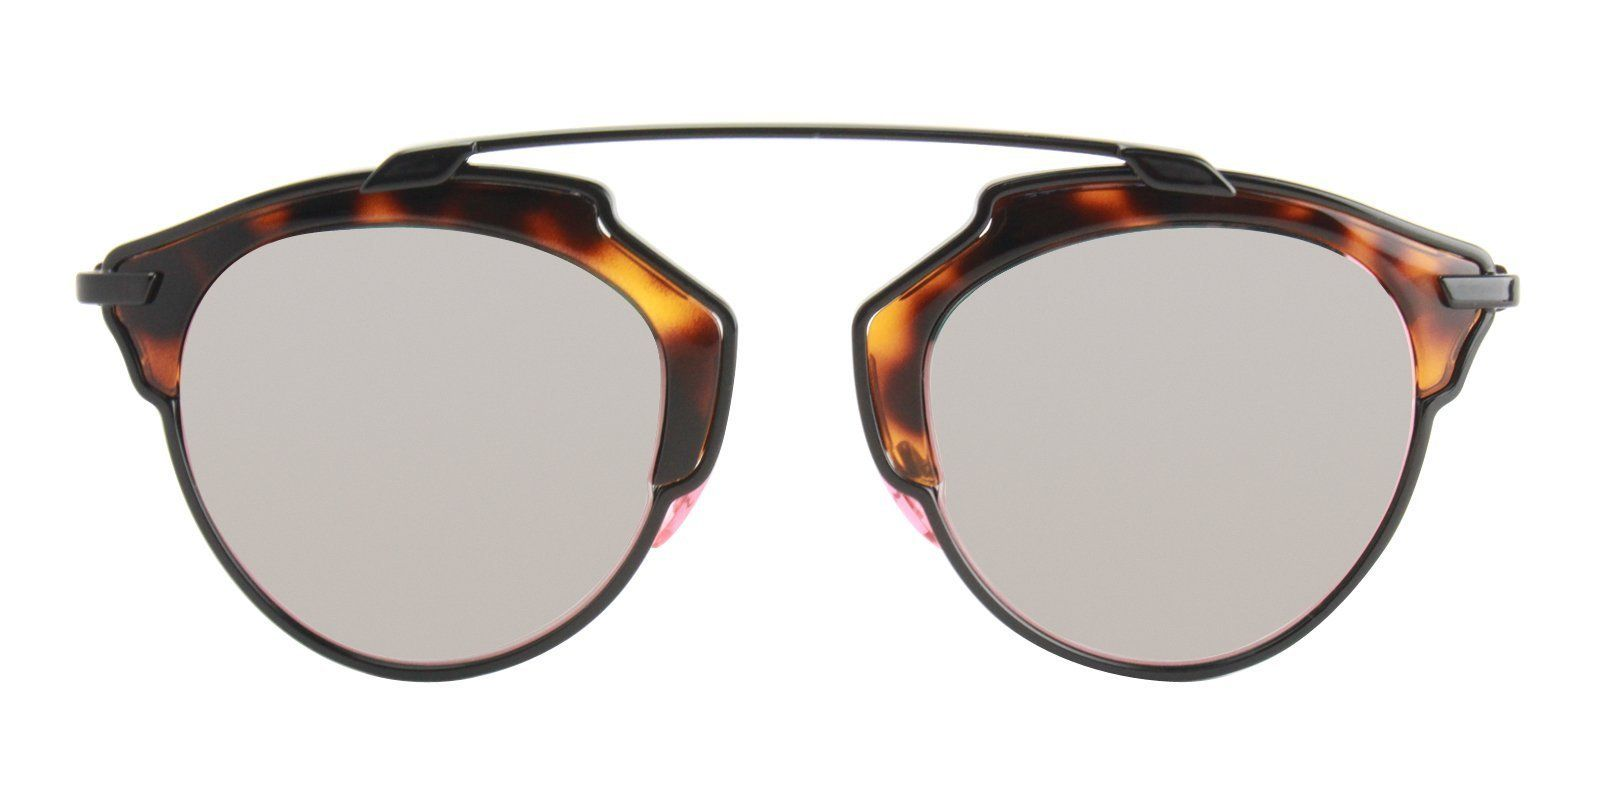 957c6b8e8ac Dior - So Real Tortoise - Pink sunglasses